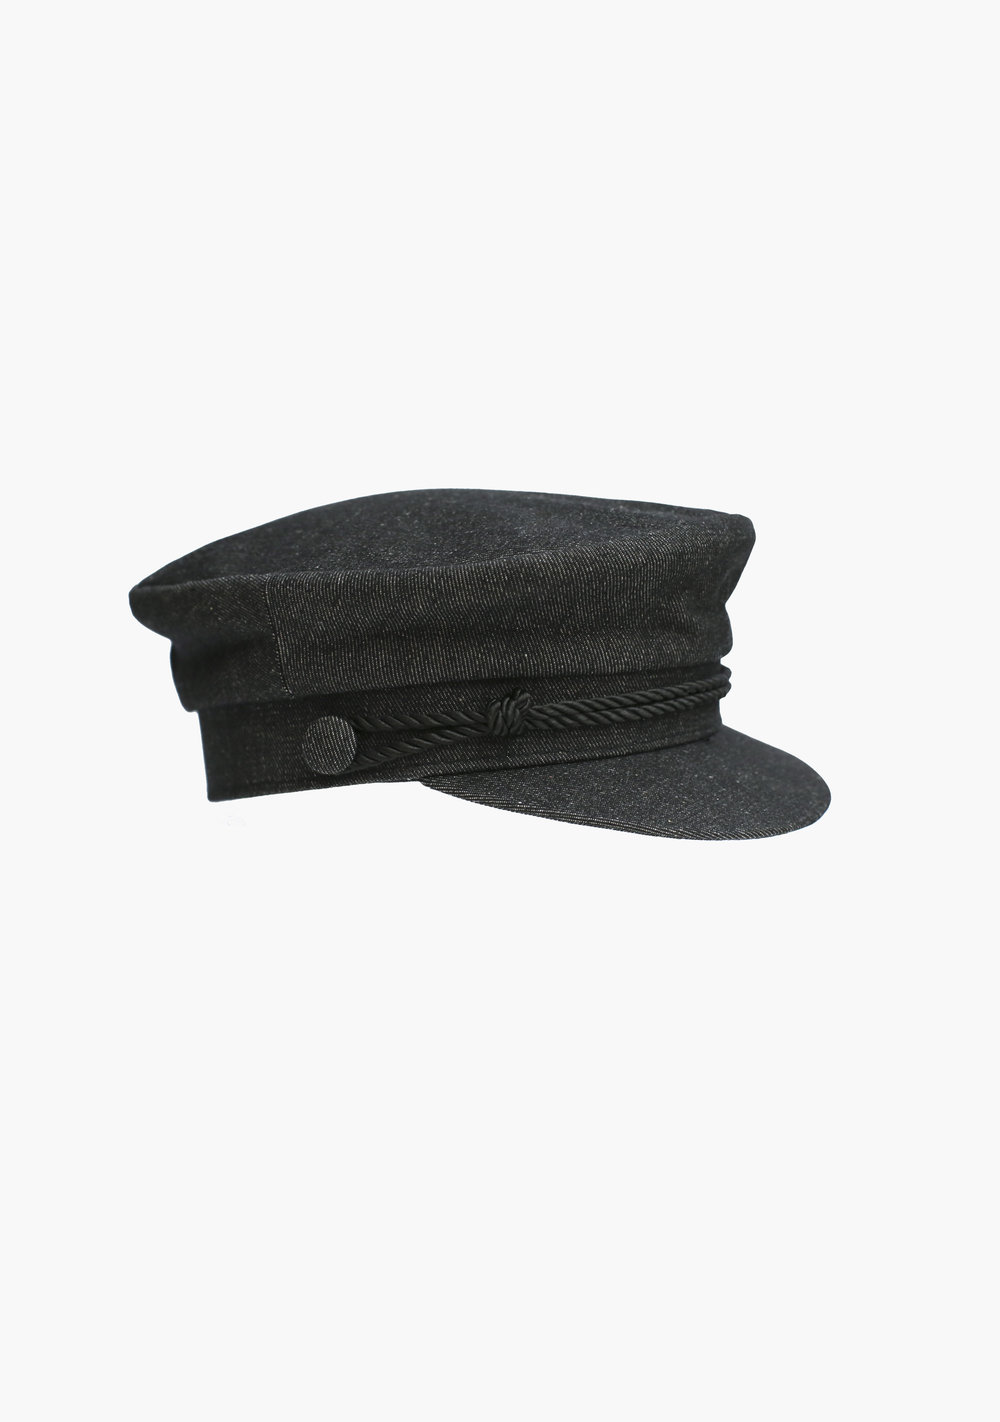 66thelabel_black_denim_cap.jpg